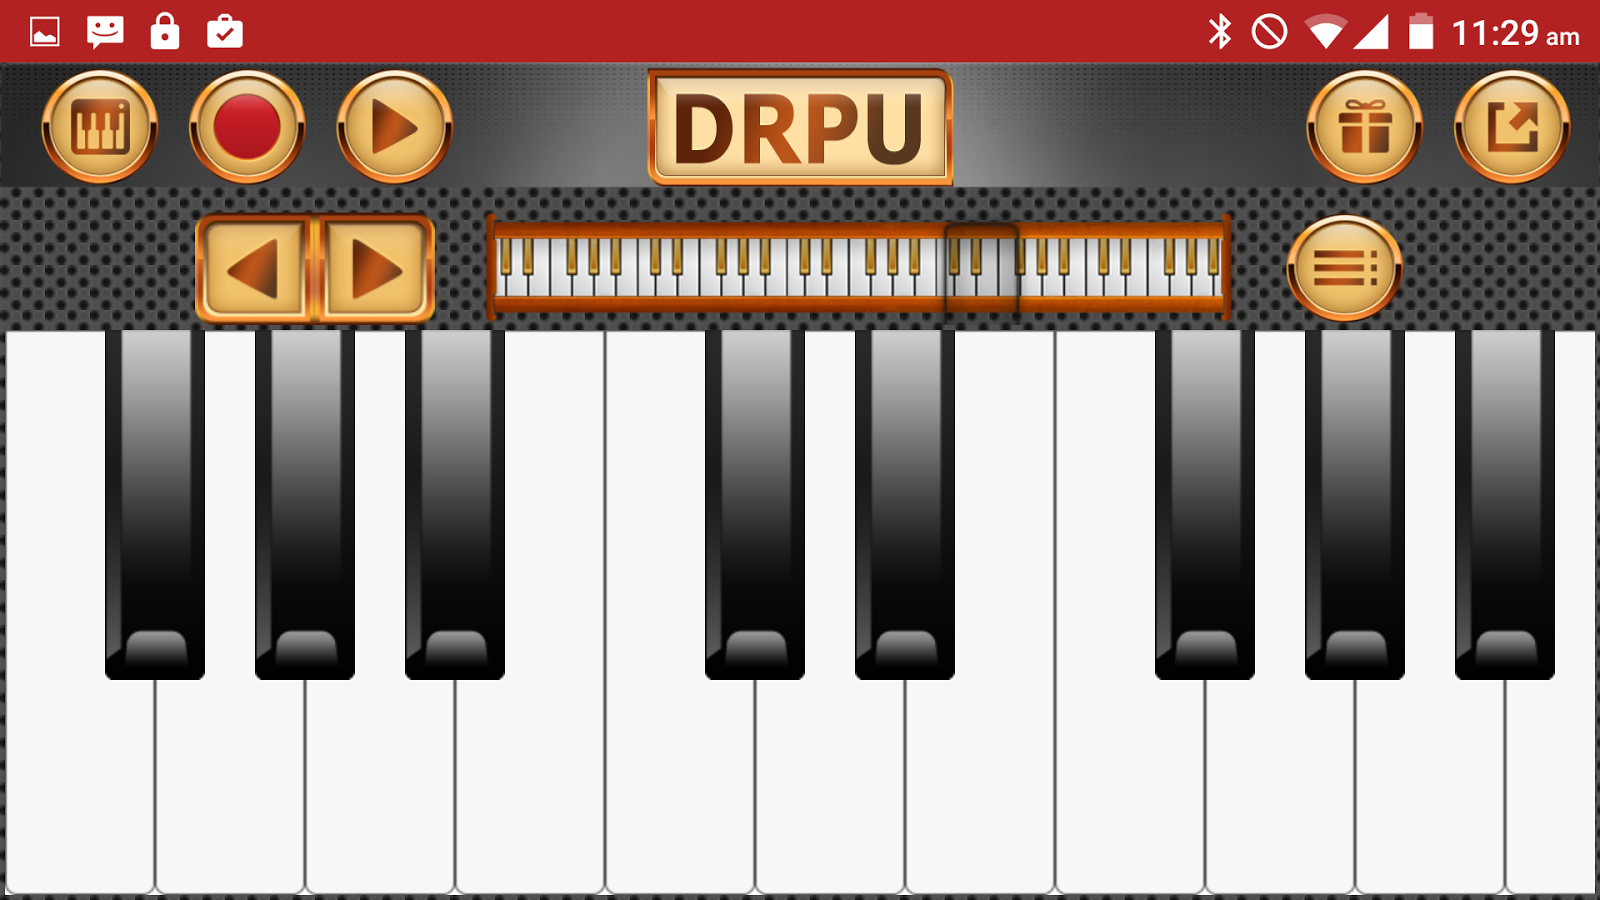 Piano Keyboard Music Pro Screenshot 1